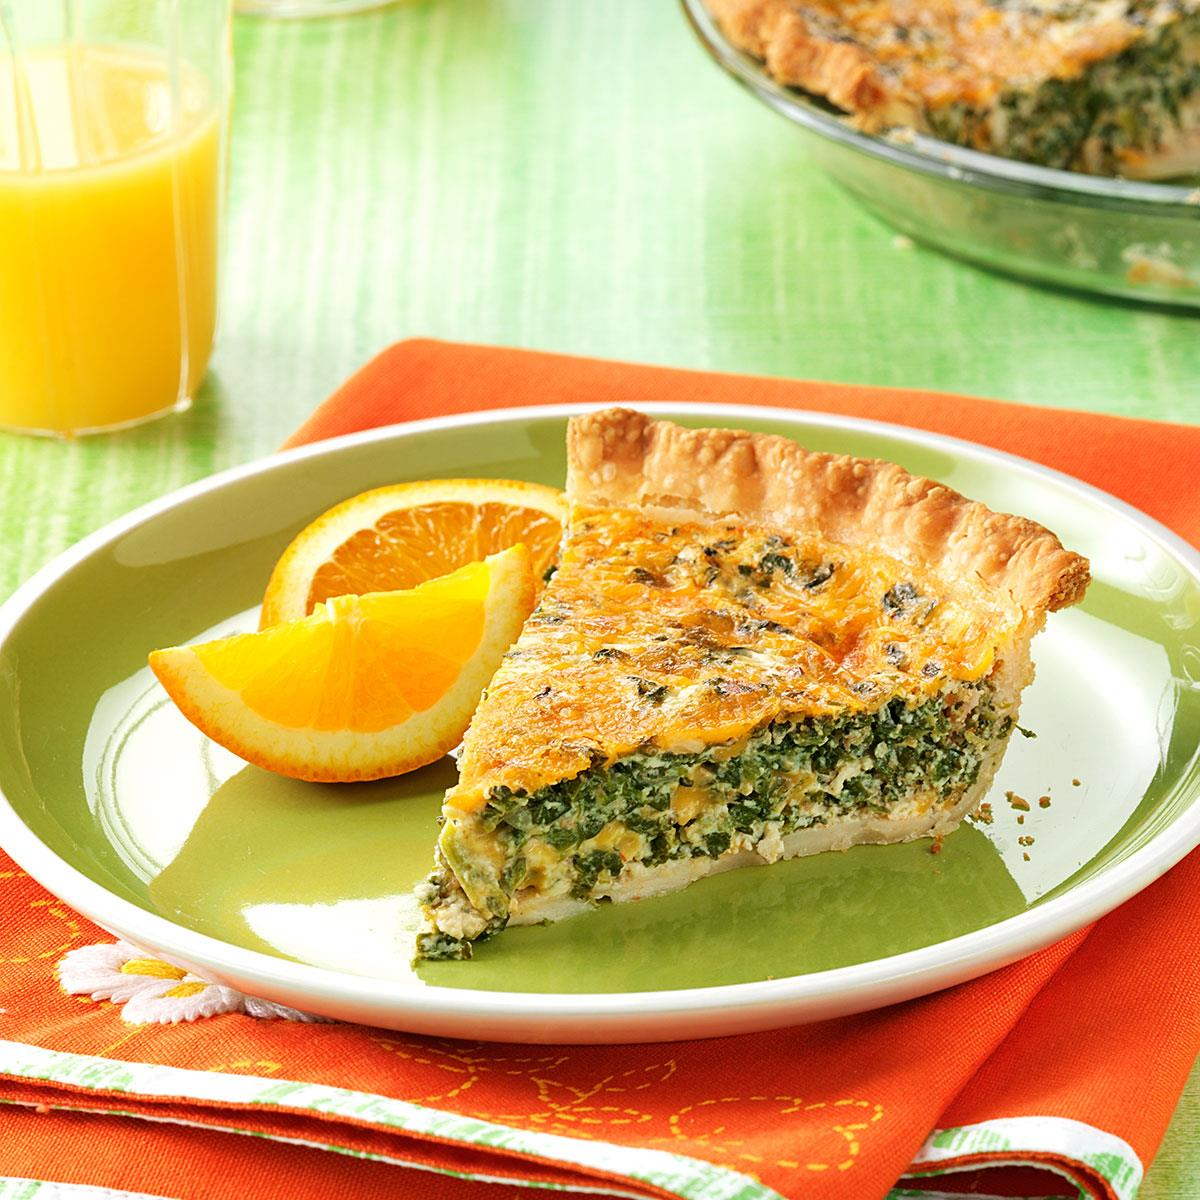 Spinach Bacon Quiche Recipe How To Make It Taste Of Home